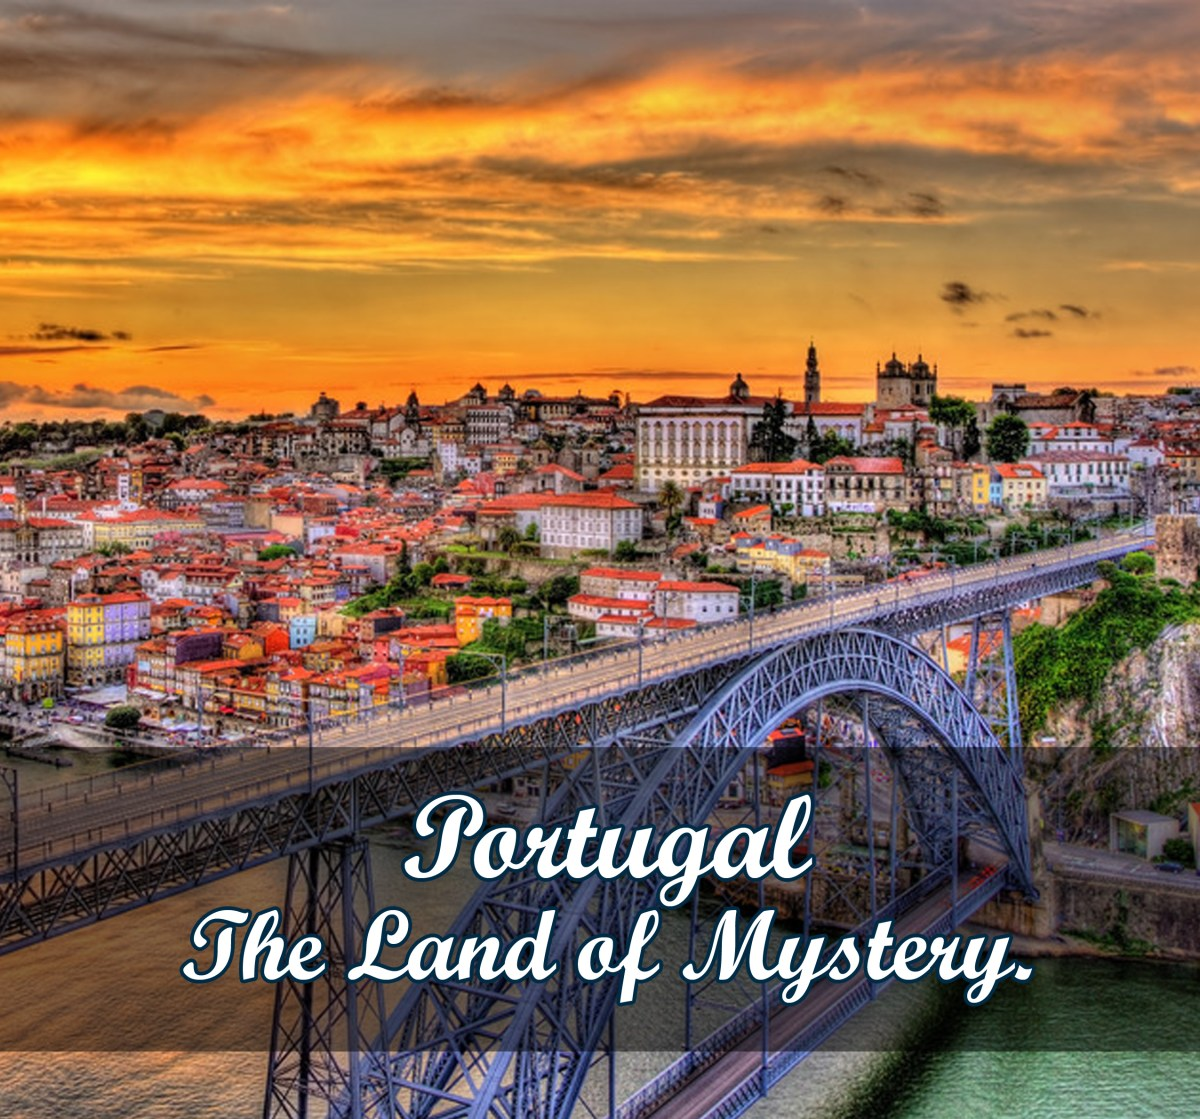 Portugal – The Land of Mystery.